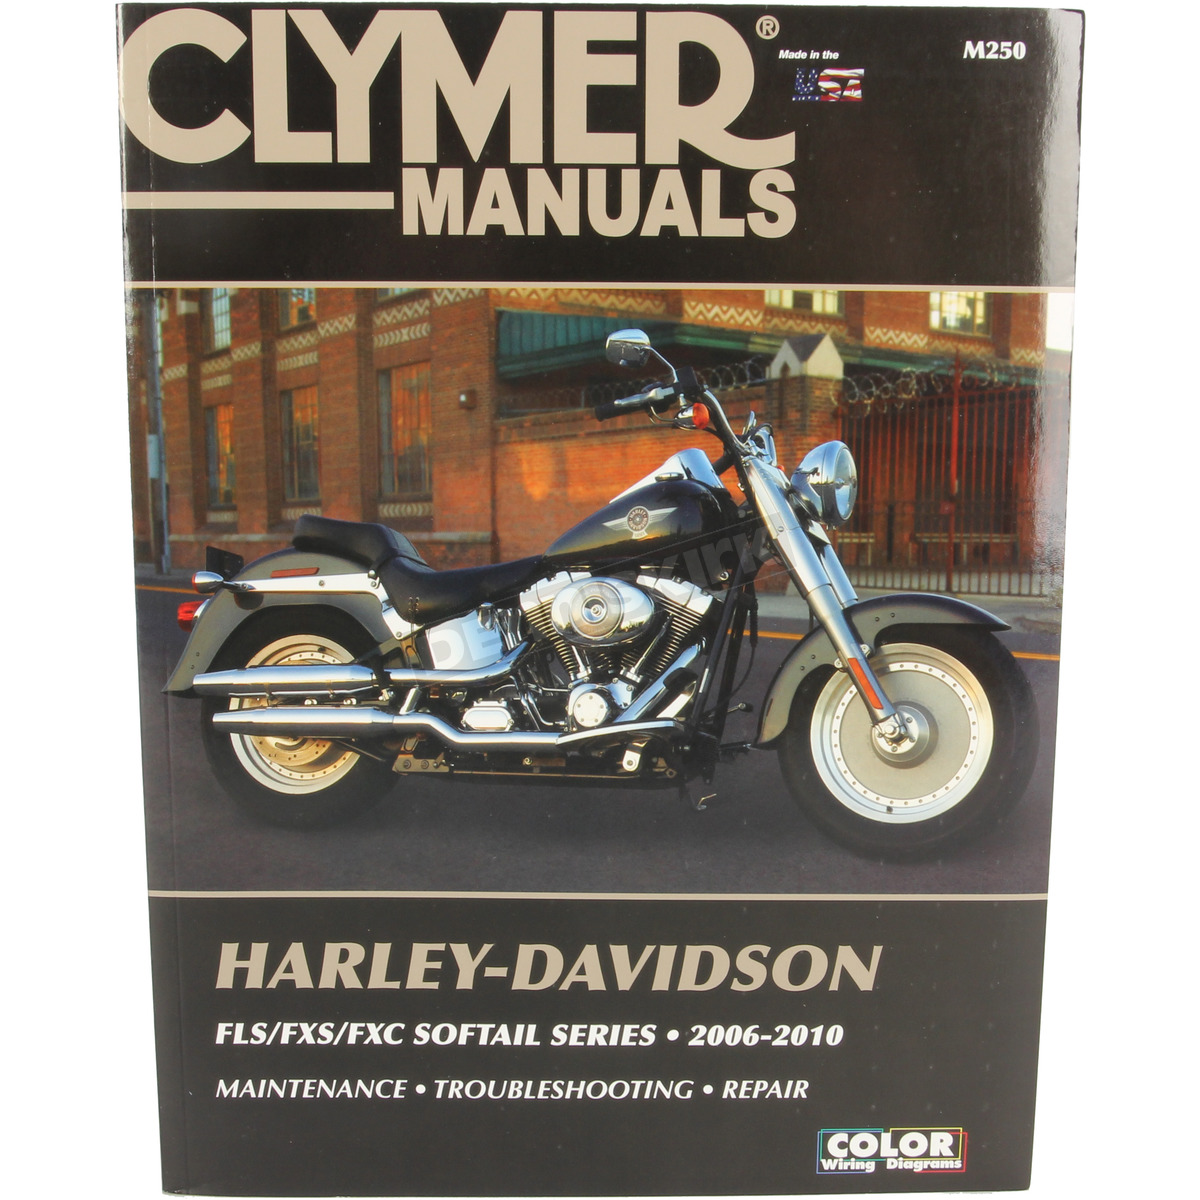 hight resolution of clymer flst fxst fxcw service manual m250